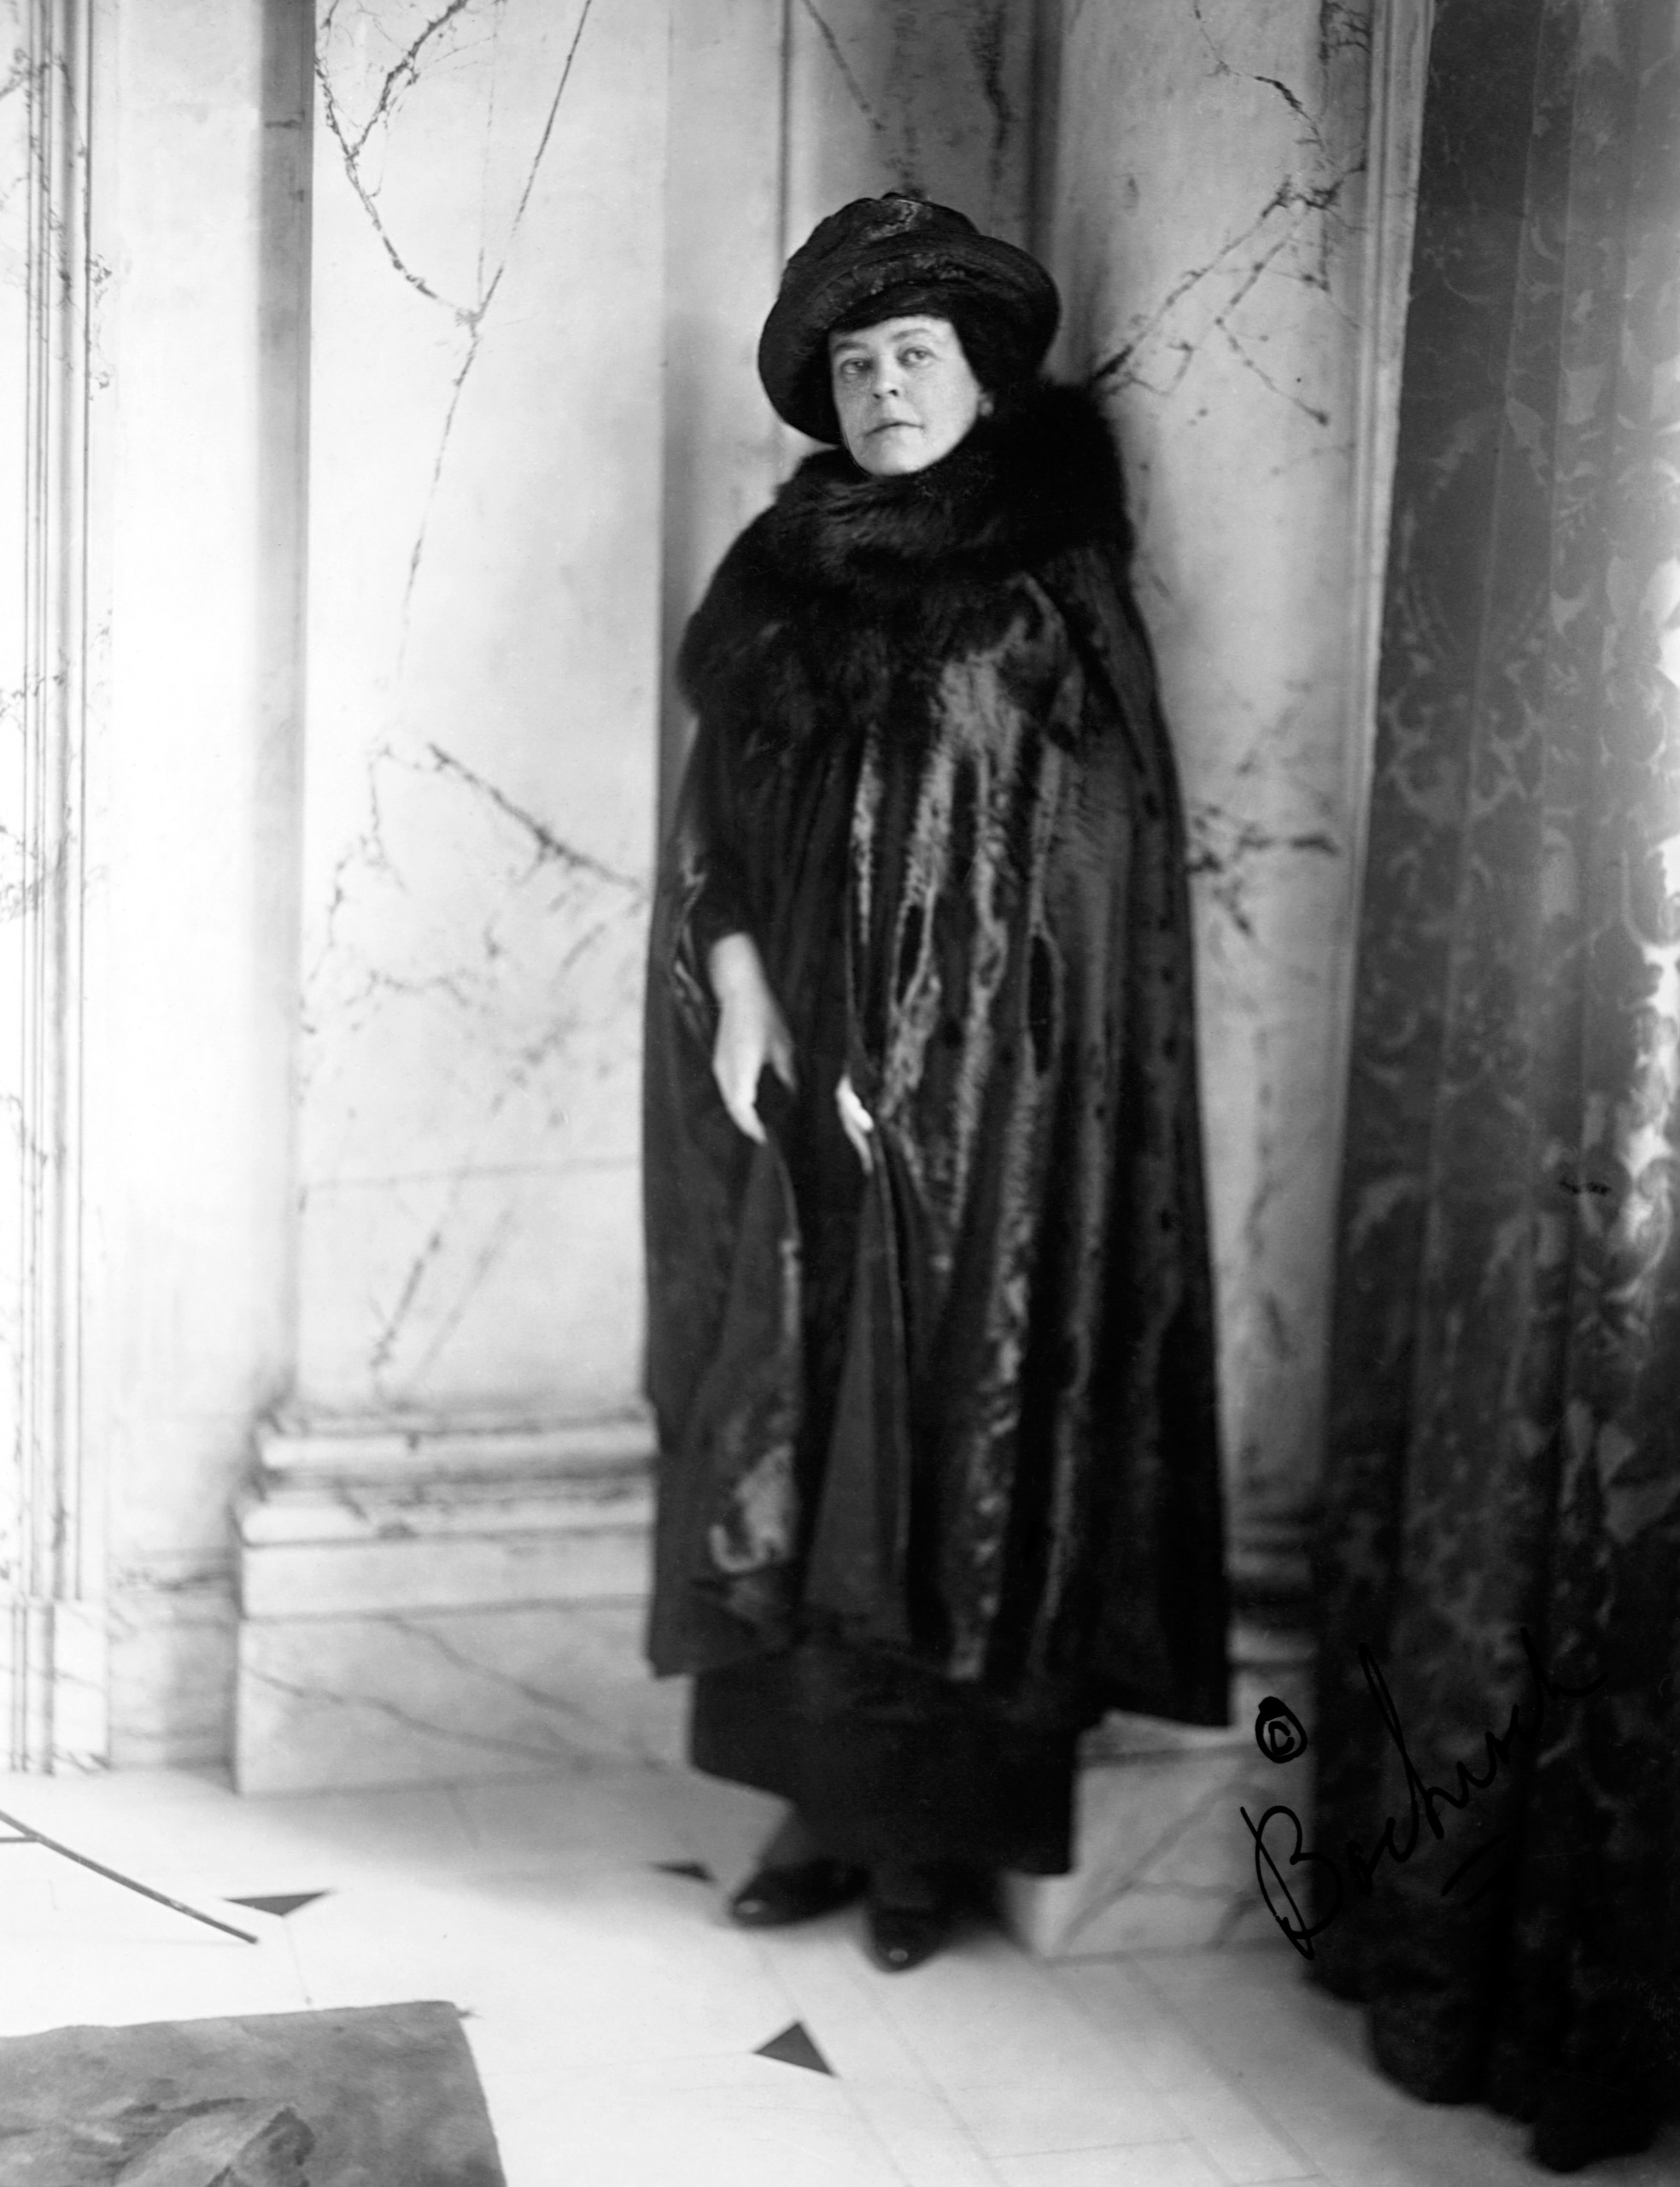 Alva Ertskin Belmont (1853-1933), pictured in 1910.Belmont, a socialite who came to the suffrage movement relatively late in life, was president of the National Woman's Party and a founder of the Political Equality League. She also provided great financial support for the movement.